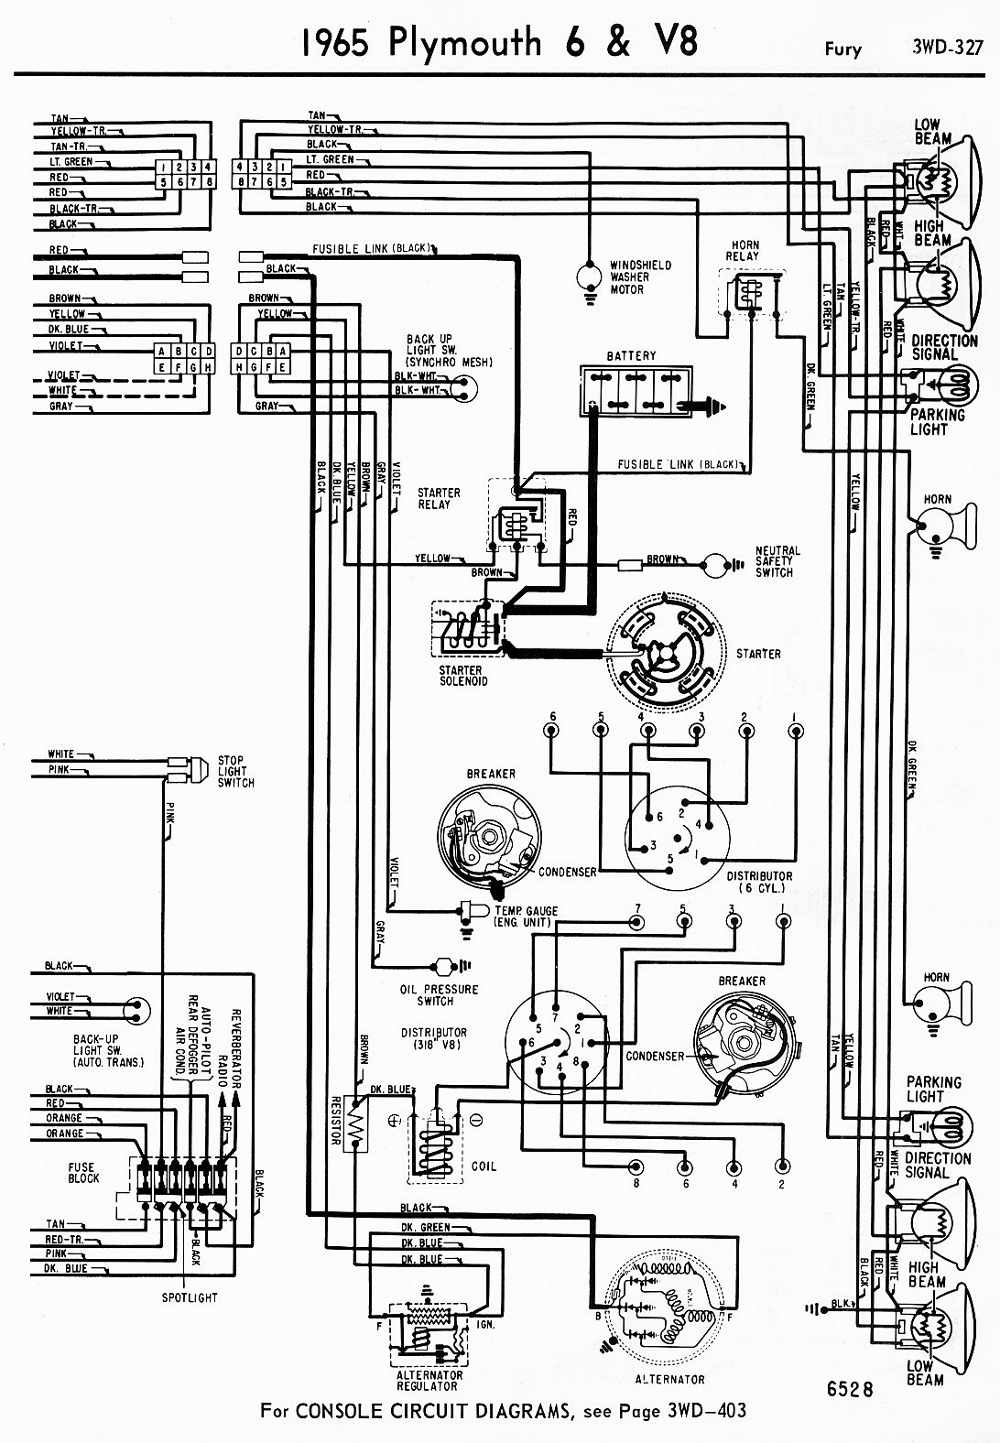 wiring diagrams of 1960 plymouth 6 savoy belvedere and fury